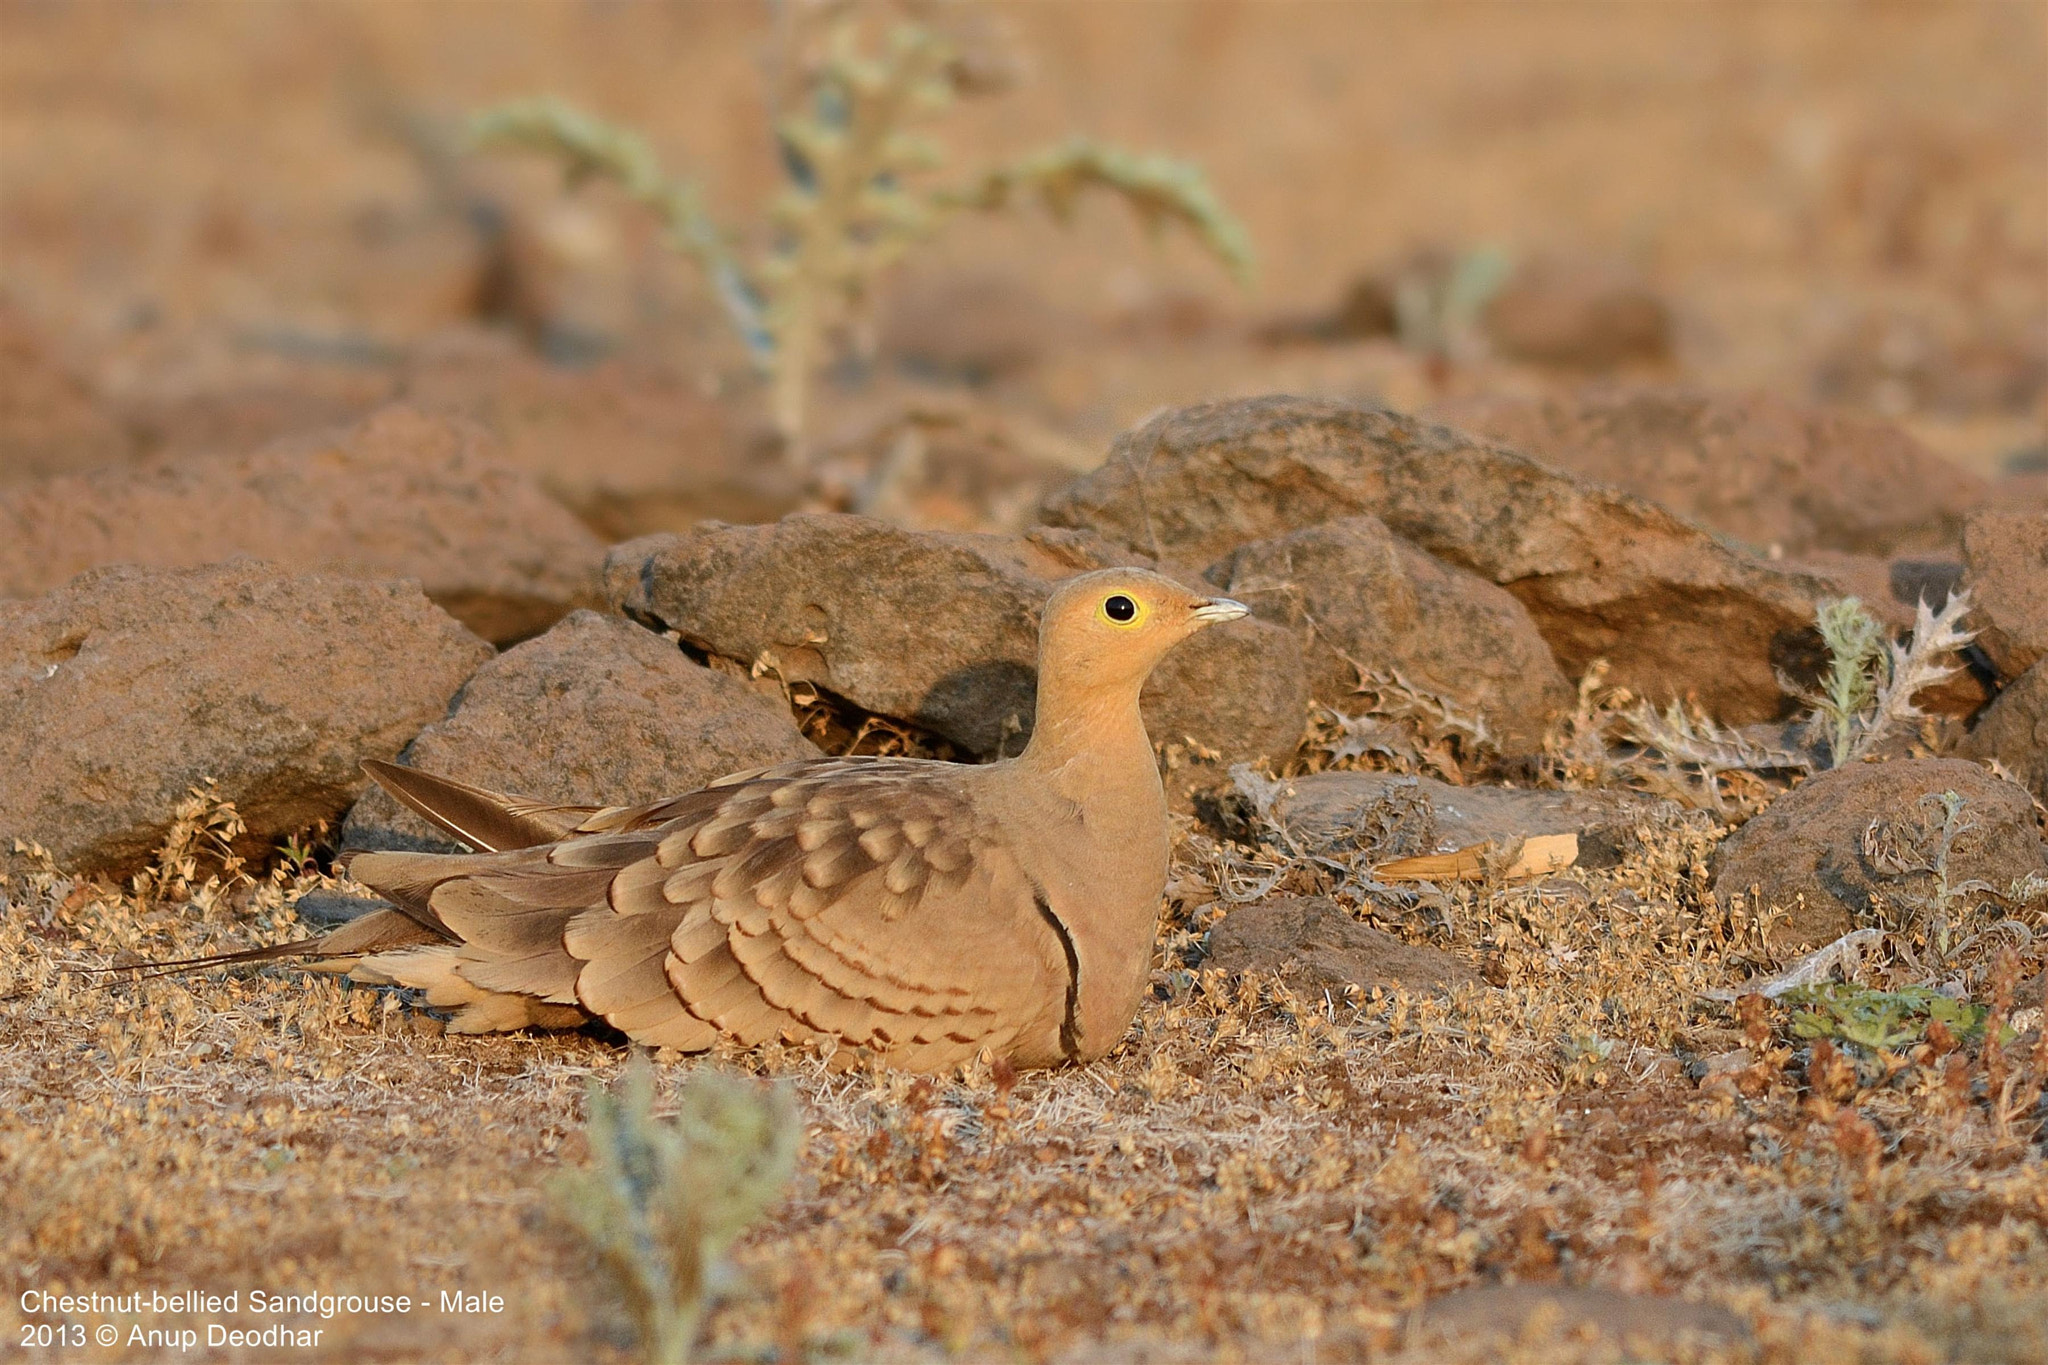 Photograph Chestnut-bellied Sandgrouse - Male by Anup Deodhar on 500px